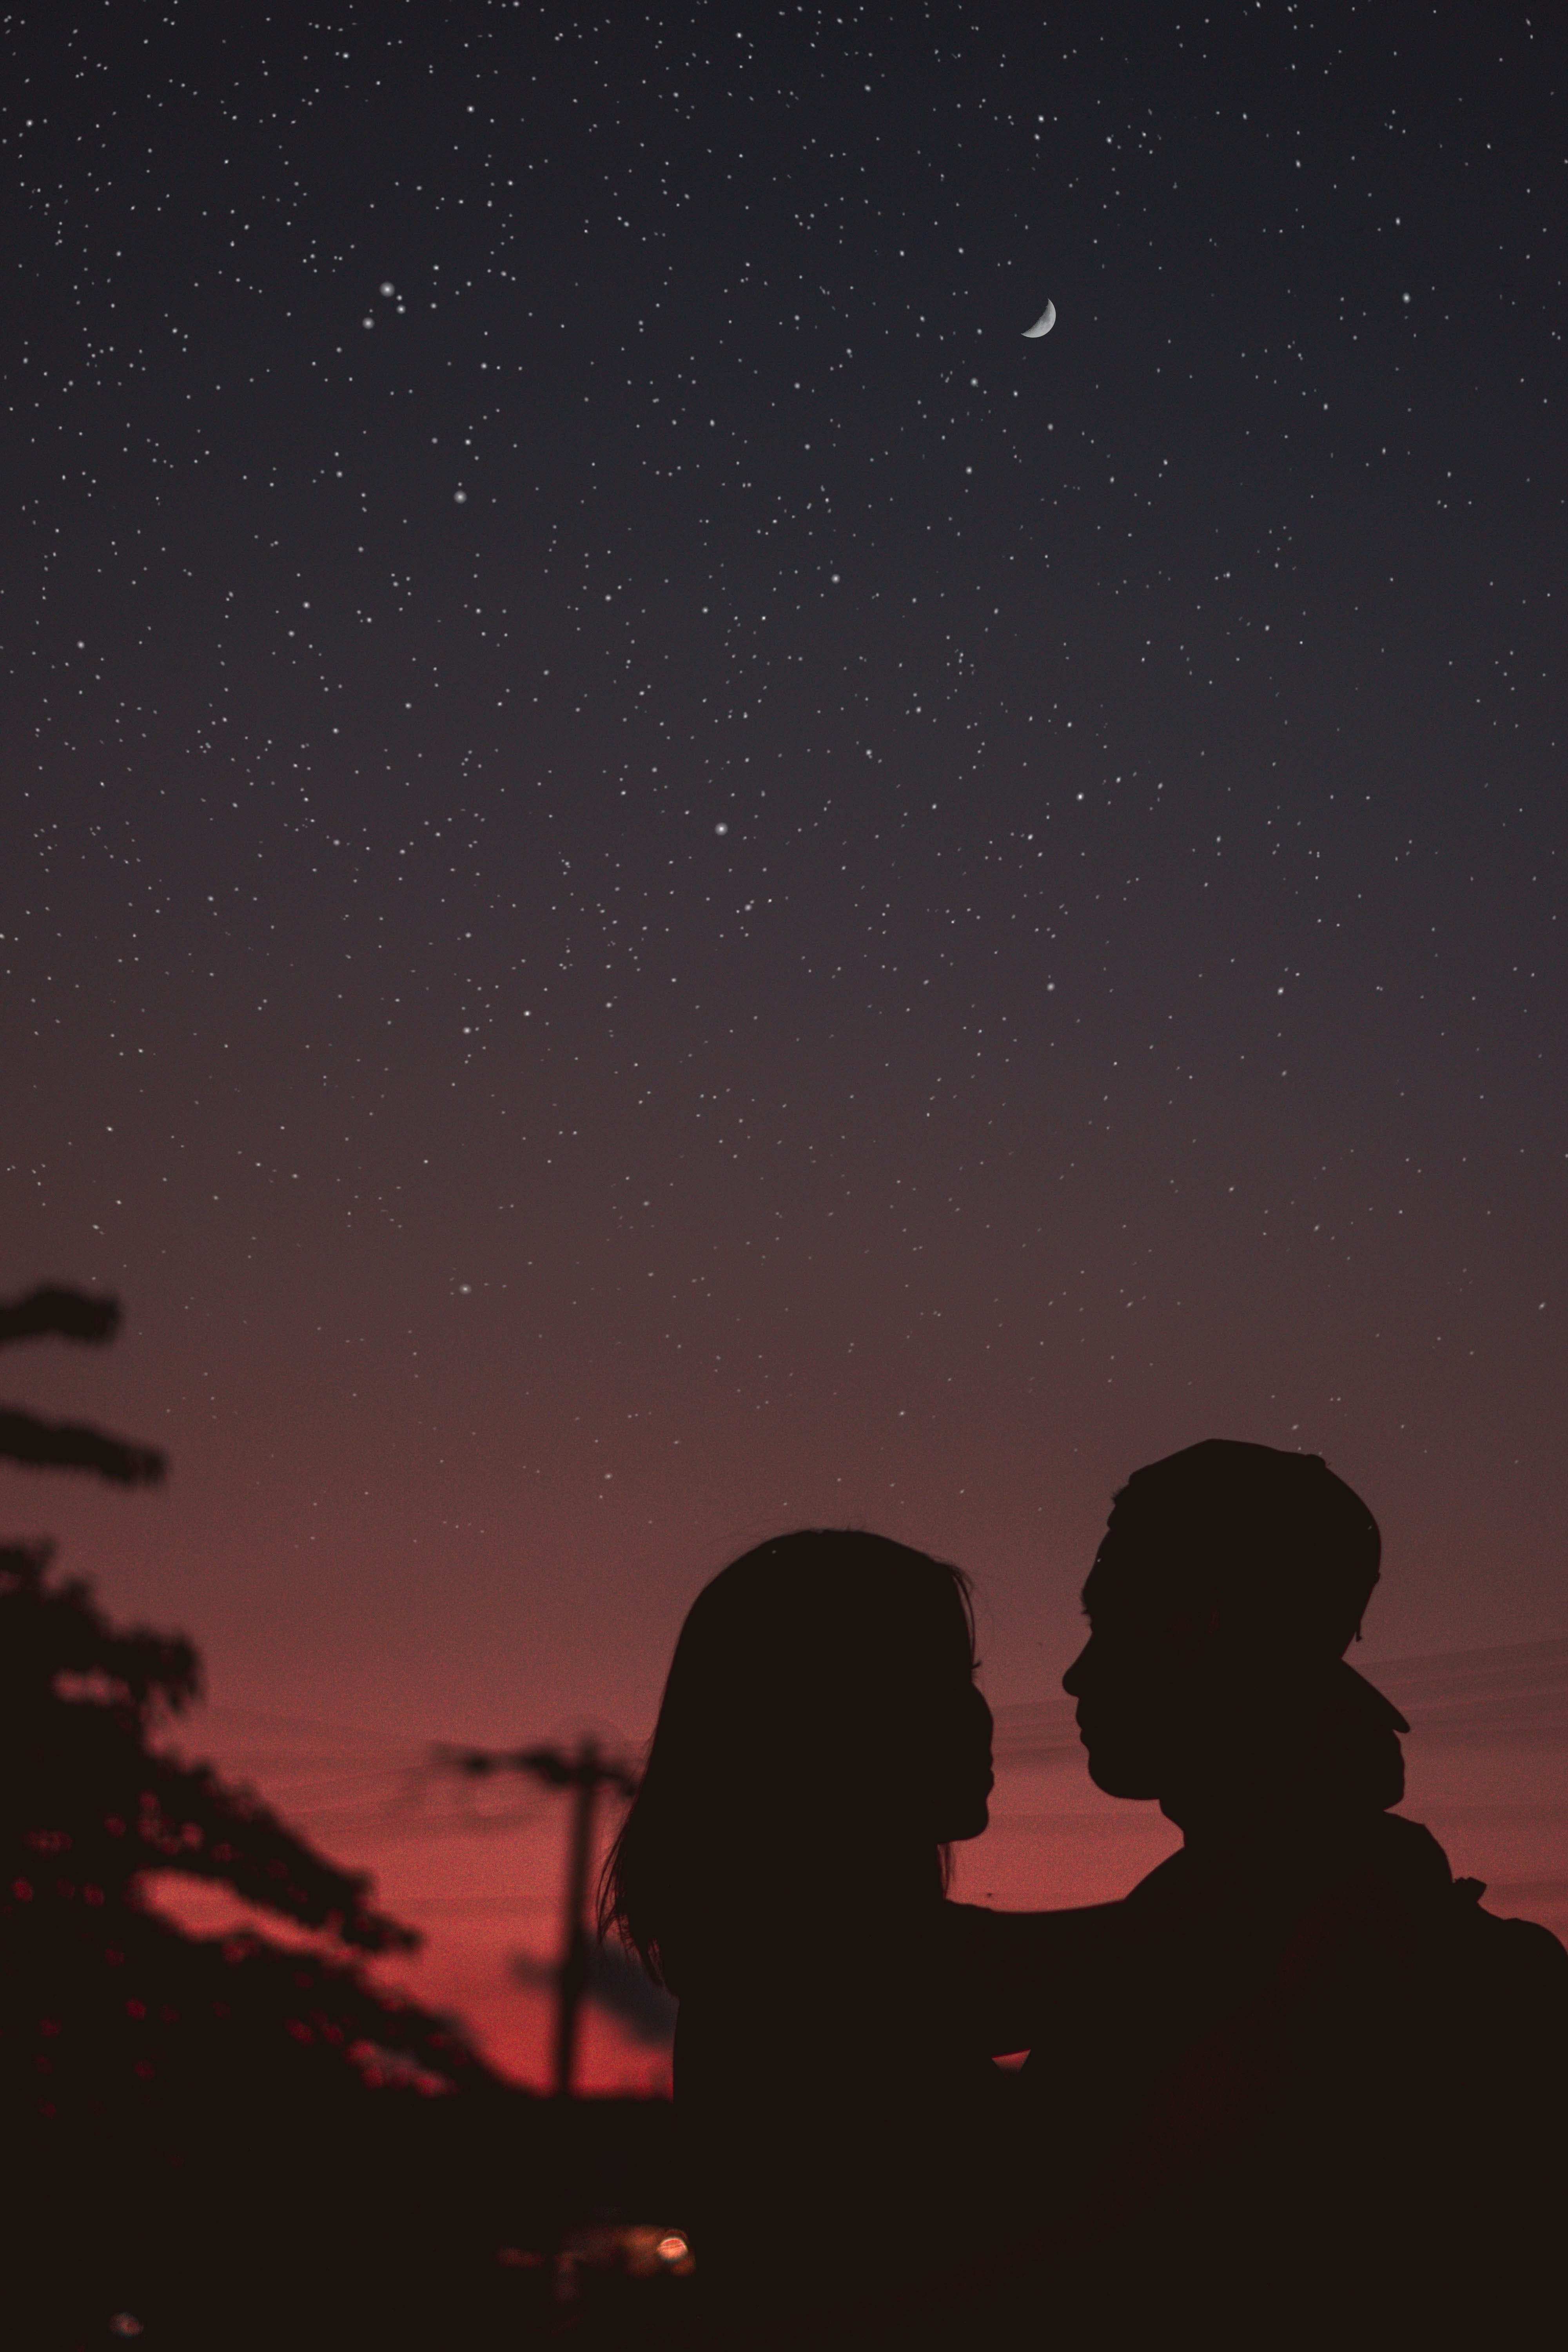 79204 download wallpaper Night, Love, Couple, Pair, Silhouettes, Starry Sky, Embrace screensavers and pictures for free